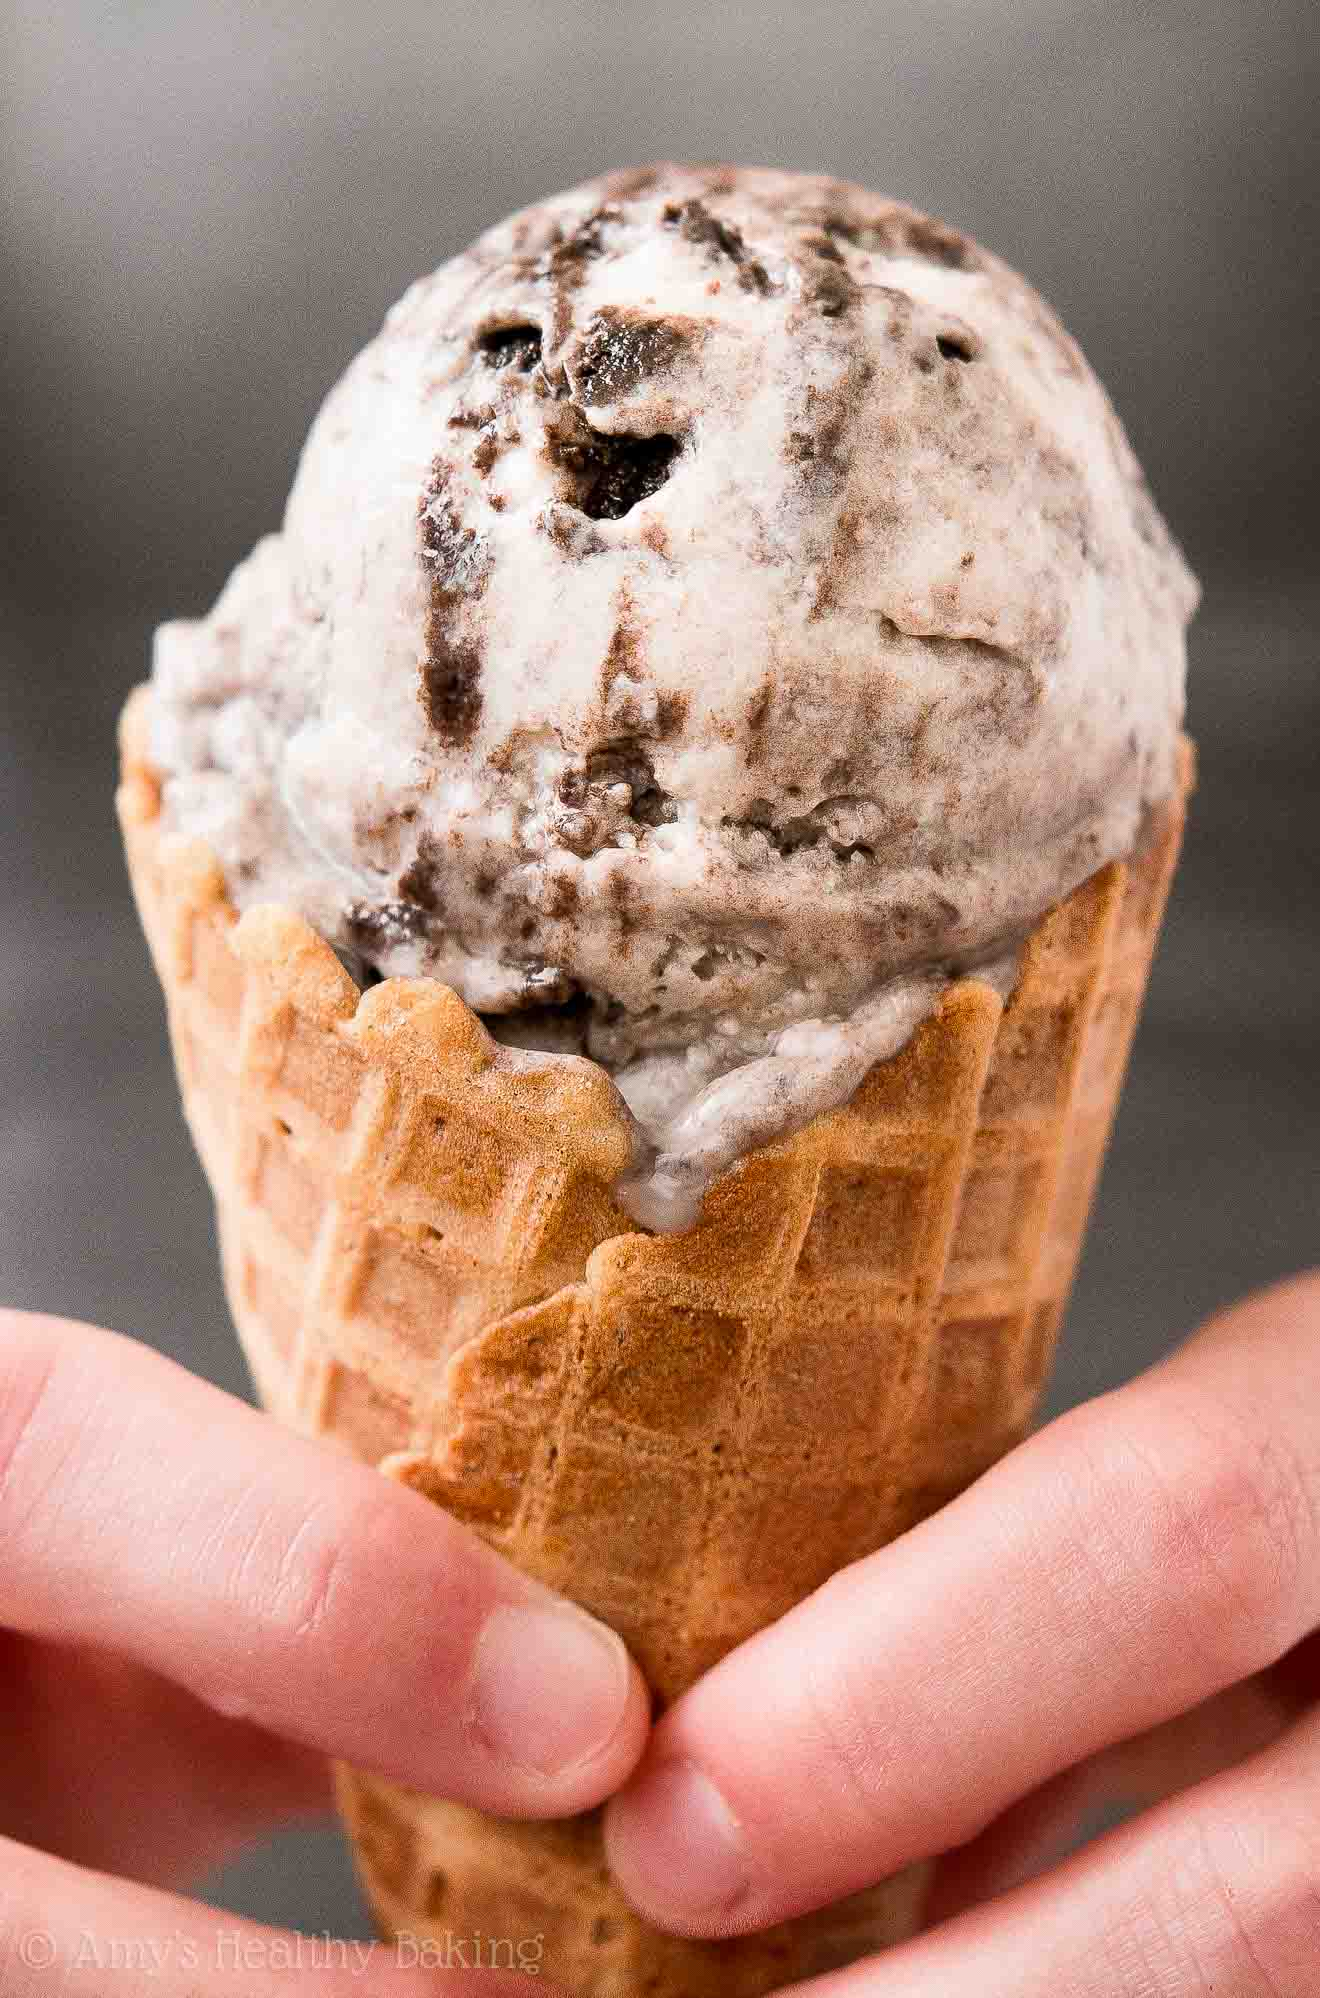 {HEALTHY!} Cookies 'n Cream Ice Cream -- only 86 calories! Full of Oreo pieces & absolutely irresistible! You NEED to try this easy recipe!